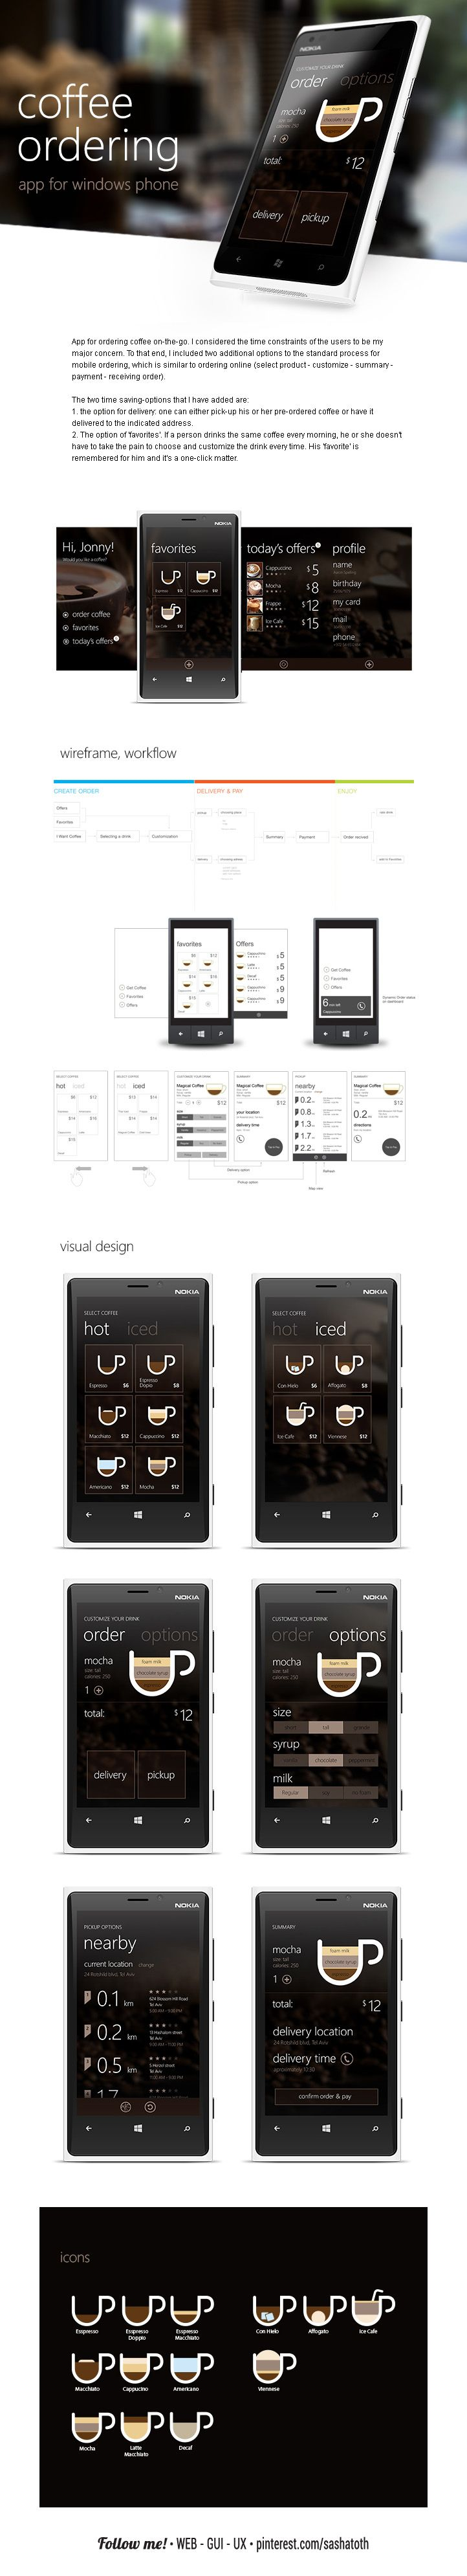 Windows app for ordering coffee on-the-go. by Michael Novoselov, via Behance *** #app #gui #ui #wp #windowsphone #behance